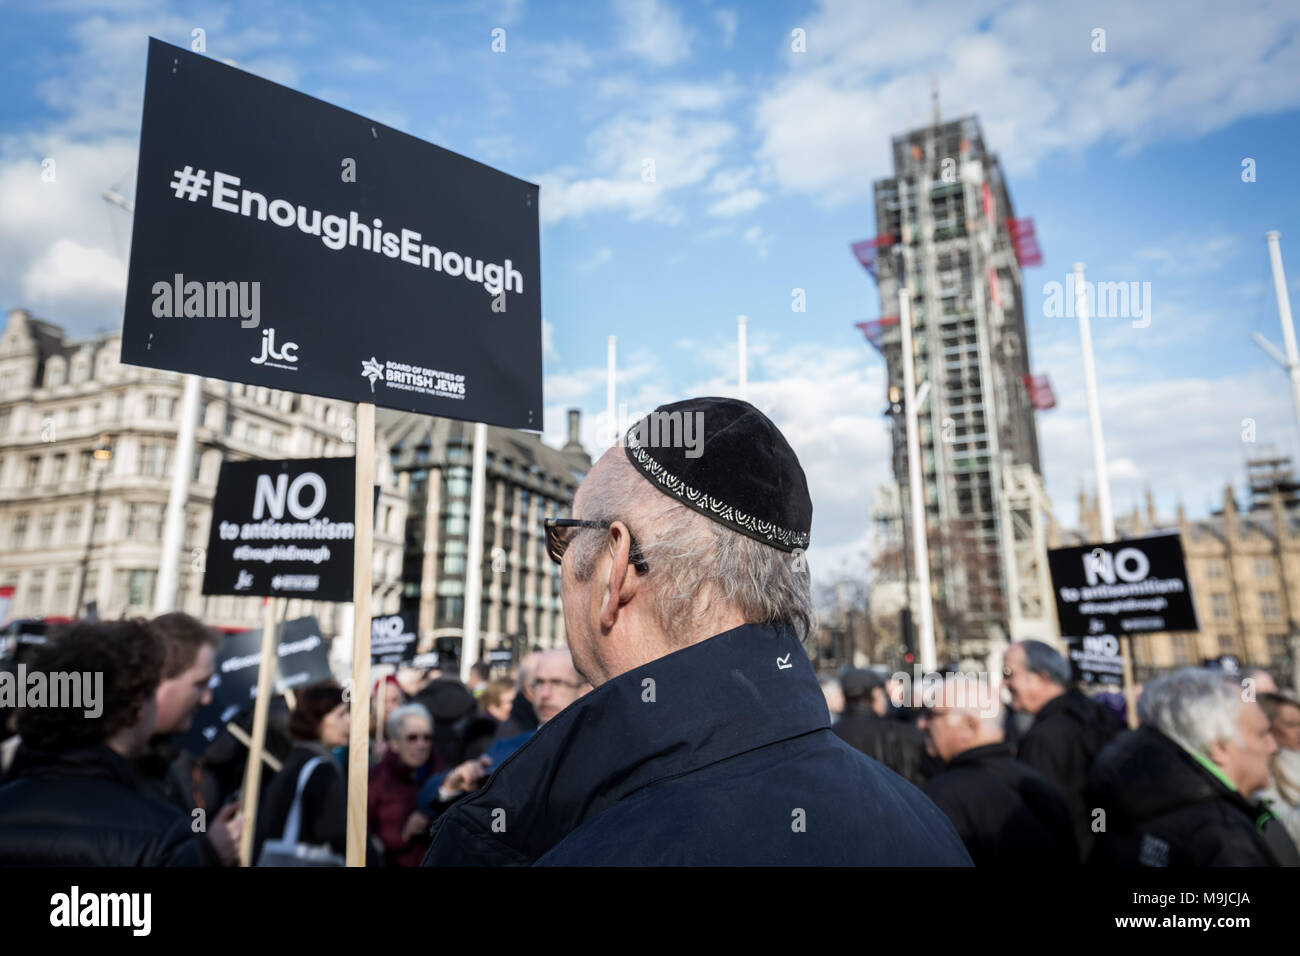 London, UK. 26th March, 2018. Hundreds of protesters, including members of the Jewish community, demonstrate against antisemitism in Parliament Square. Labour leader Jeremy Corbyn has conceded that there is a problem with antisemitism within the Labour party that the party has still yet to resolve. Credit: Guy Corbishley/Alamy Live News - Stock Image